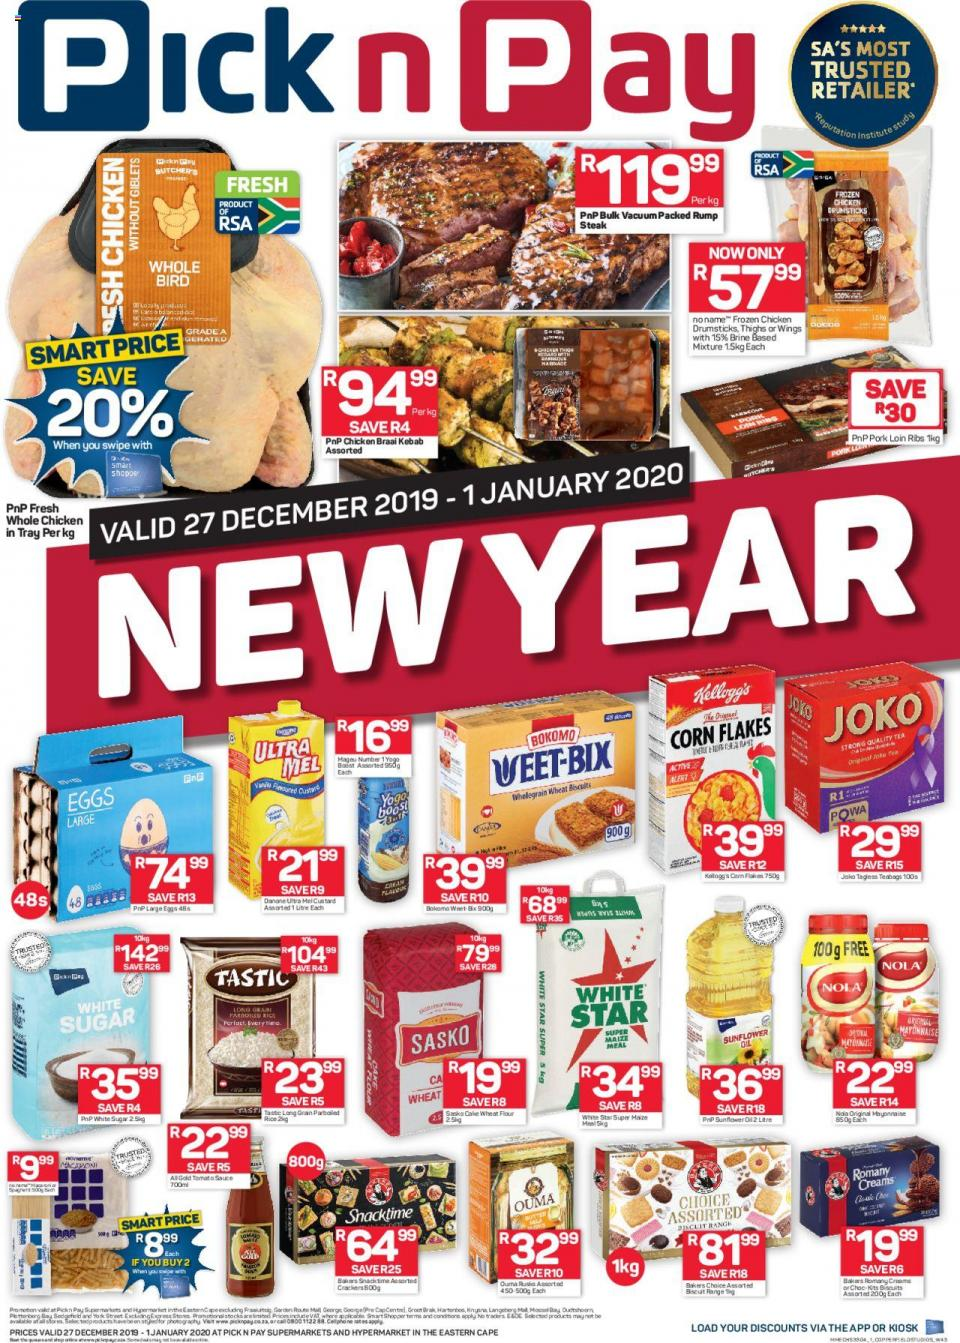 pick n pay specials new year sale 27 december 2019